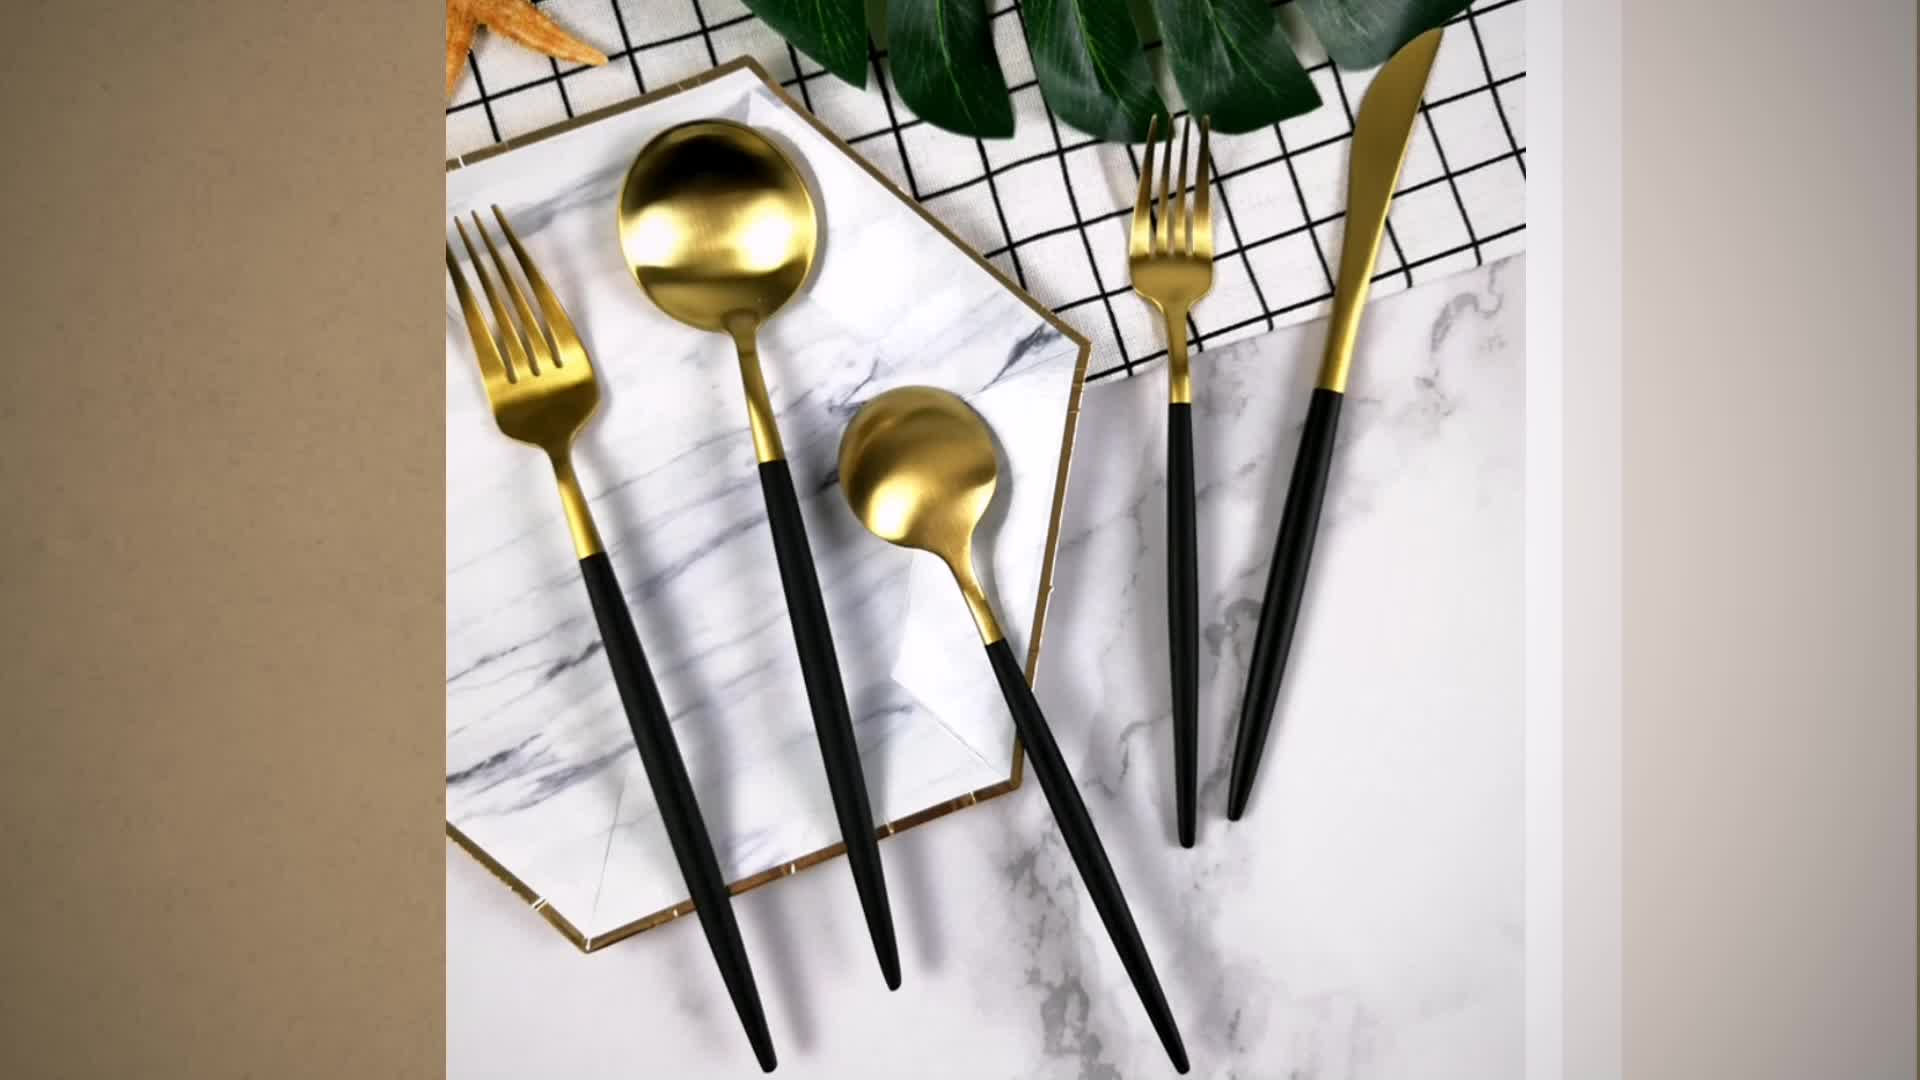 High End Cutlery 24pc Hotel Used Restaurant Flatware With High End 304 18